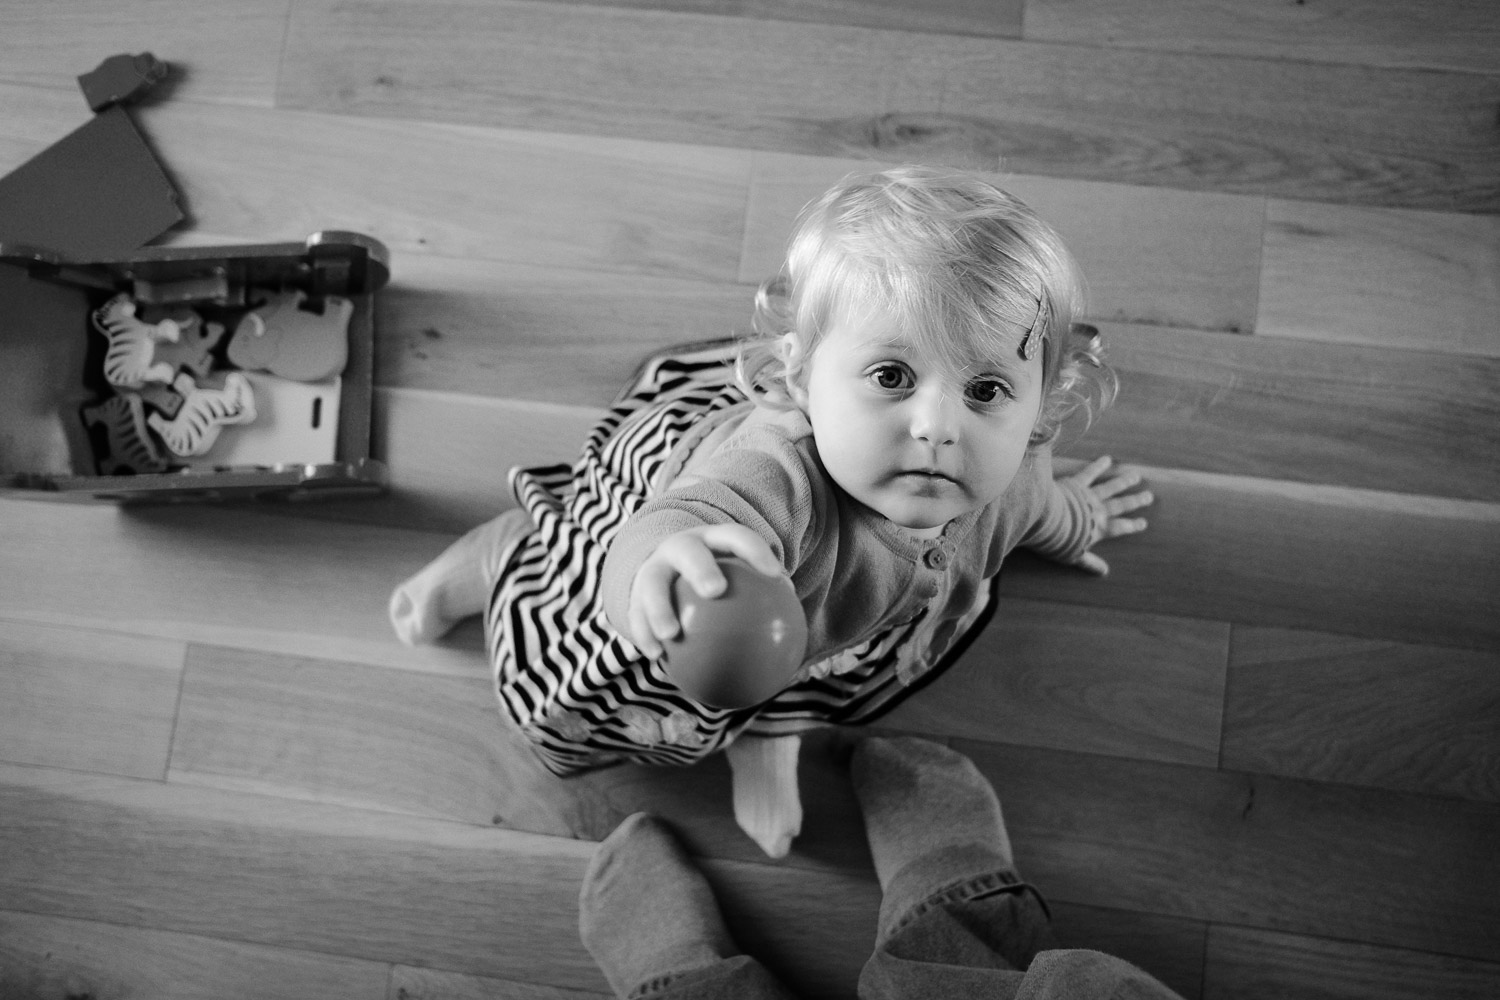 Documentary family portrait photography in Nottingham - toddler looking up sharing a ball to play with in black and white